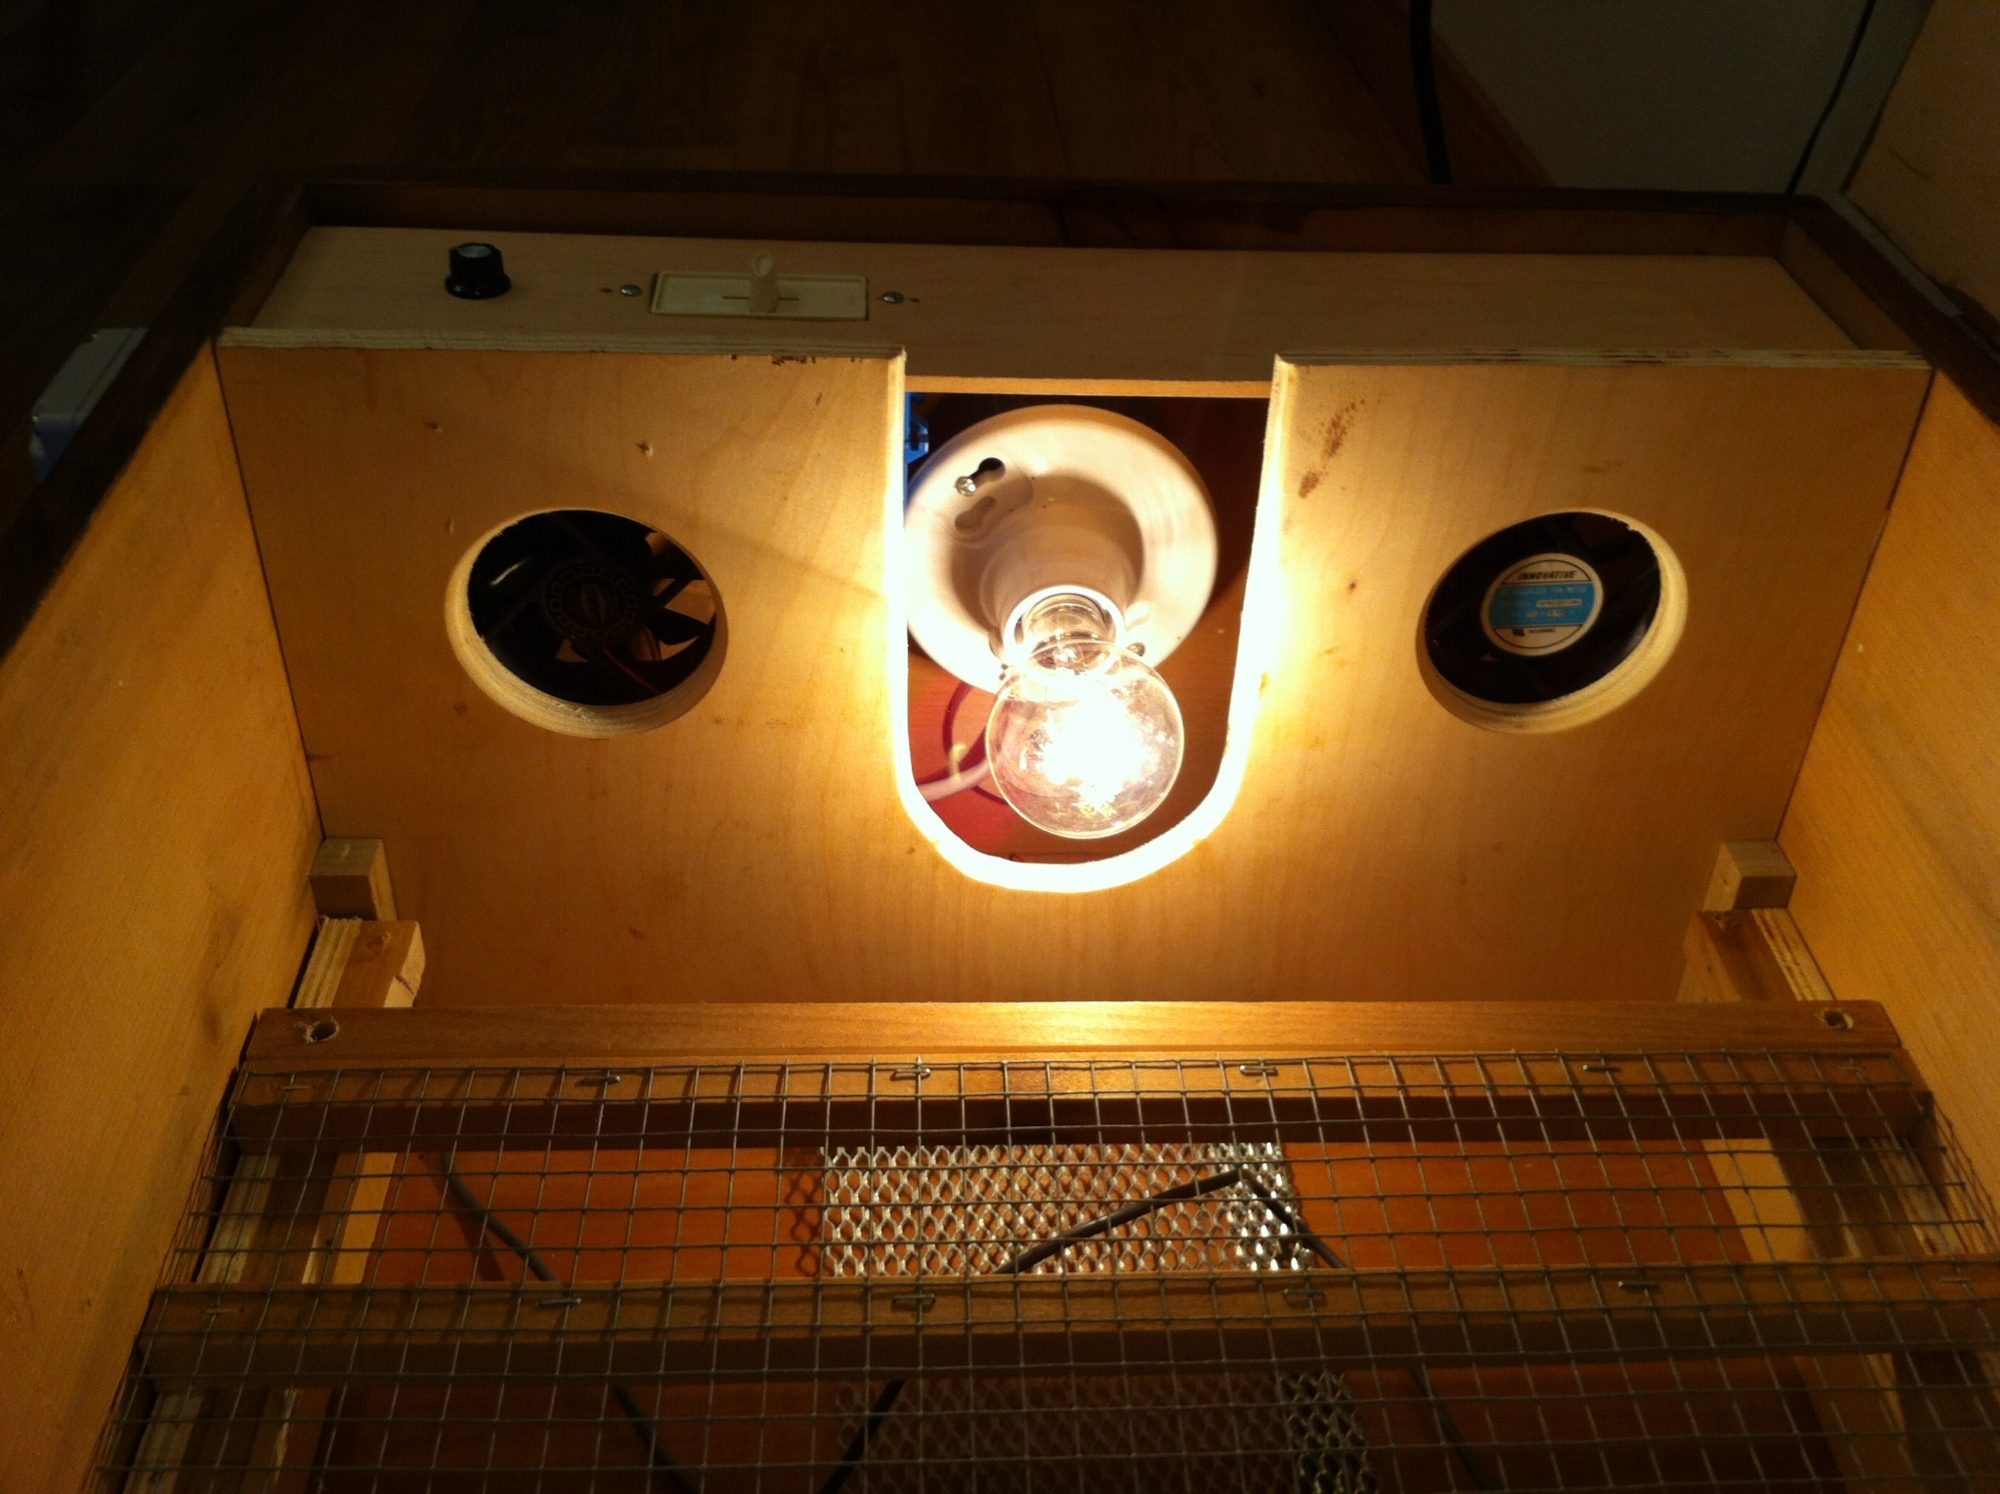 Dukes Incubator Backyard Chickens Temperature Controller Table Saw Ranco Remember The Fans This Is Where They Are Mounted Controlled By A Dimmer Which Far Too Big For Them So Its Really Just An On Off Switch